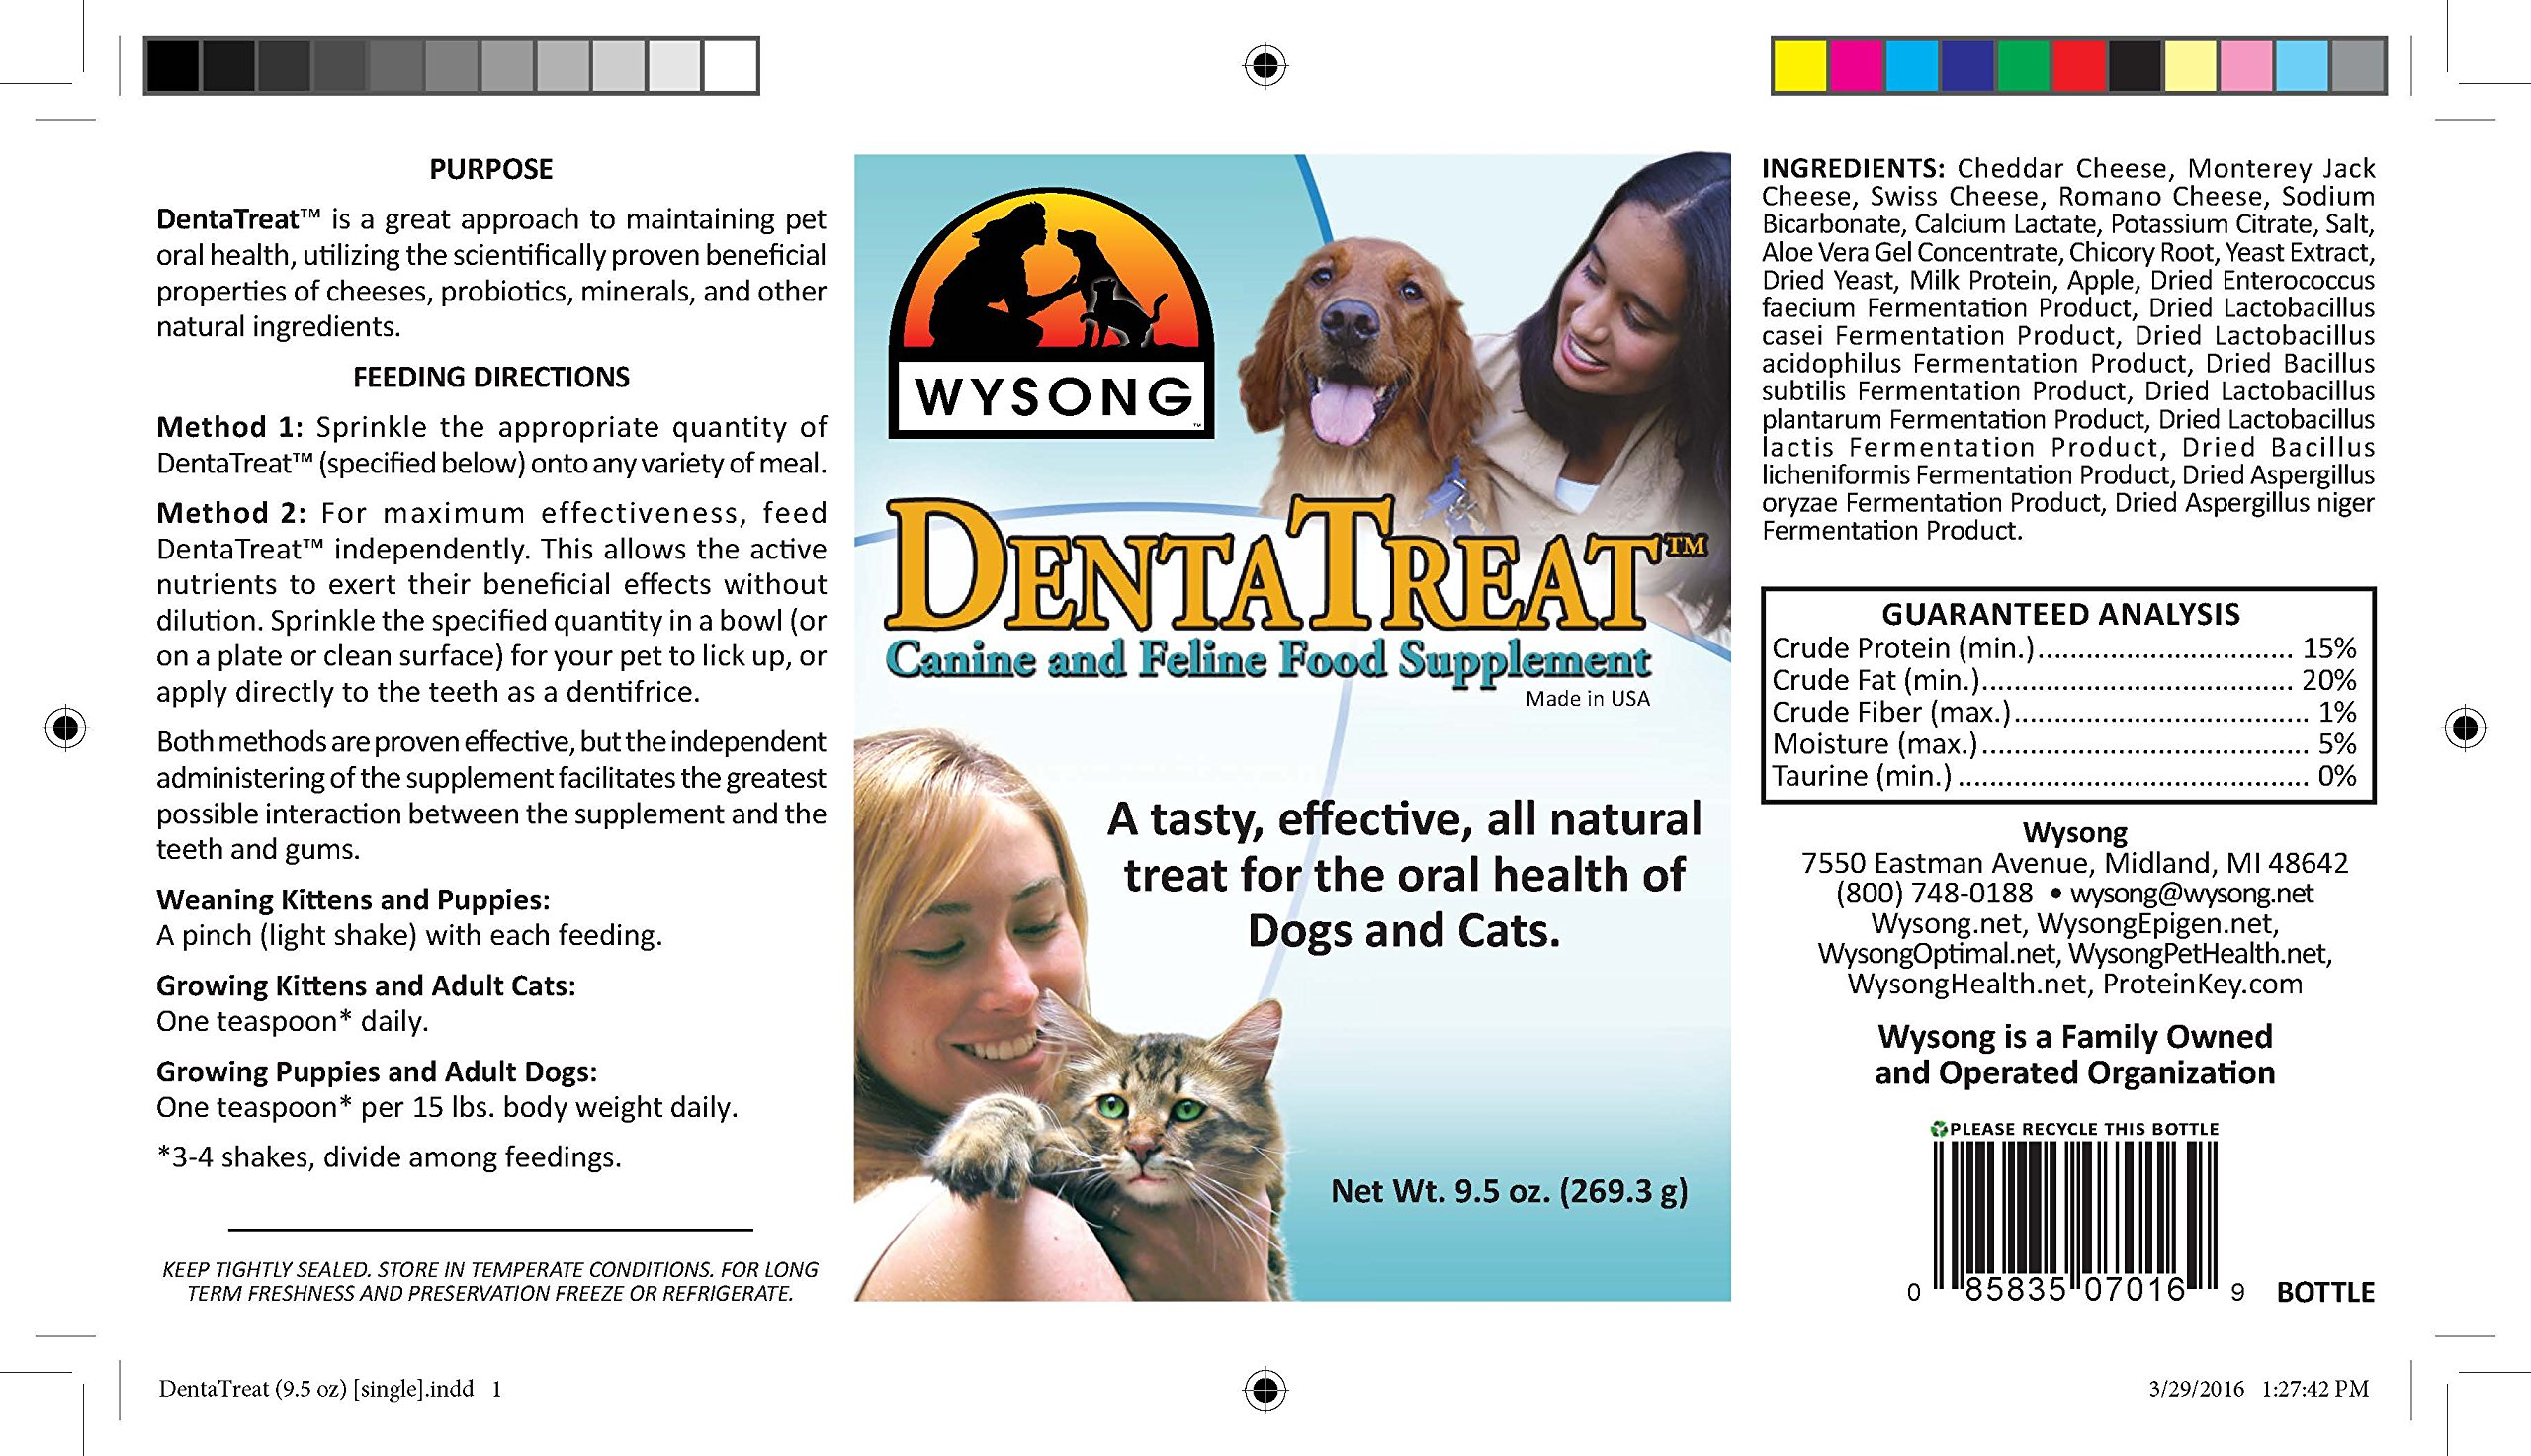 Wysong DentaTreat Canine/Feline - Dog/Cat Food Supplement - 9.5 Ounce Bottle